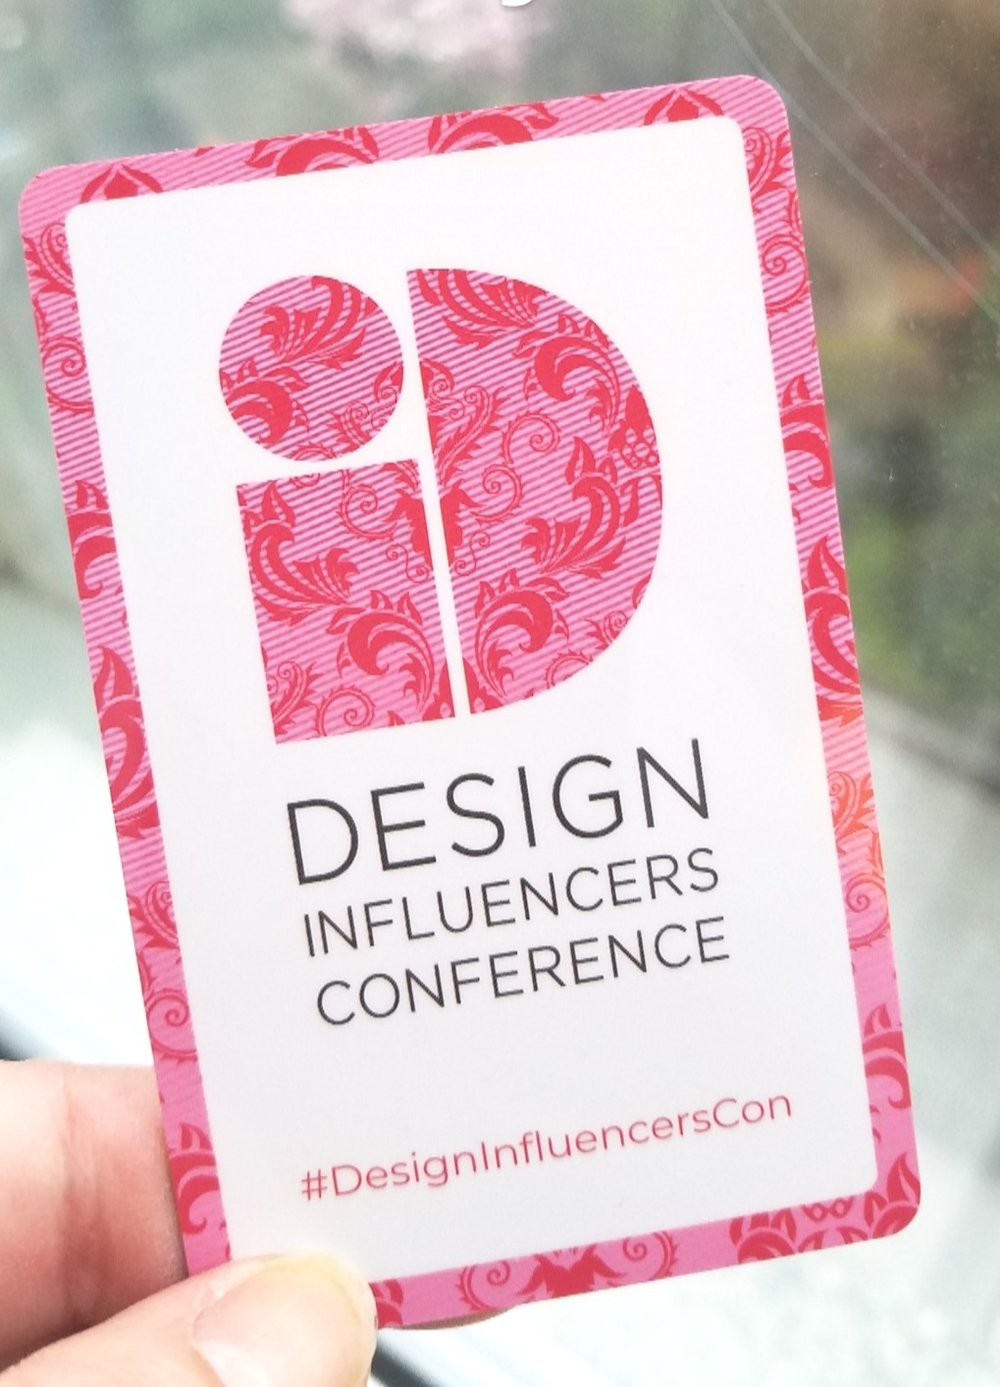 DI+conference+room+card+and+logo+.jpg